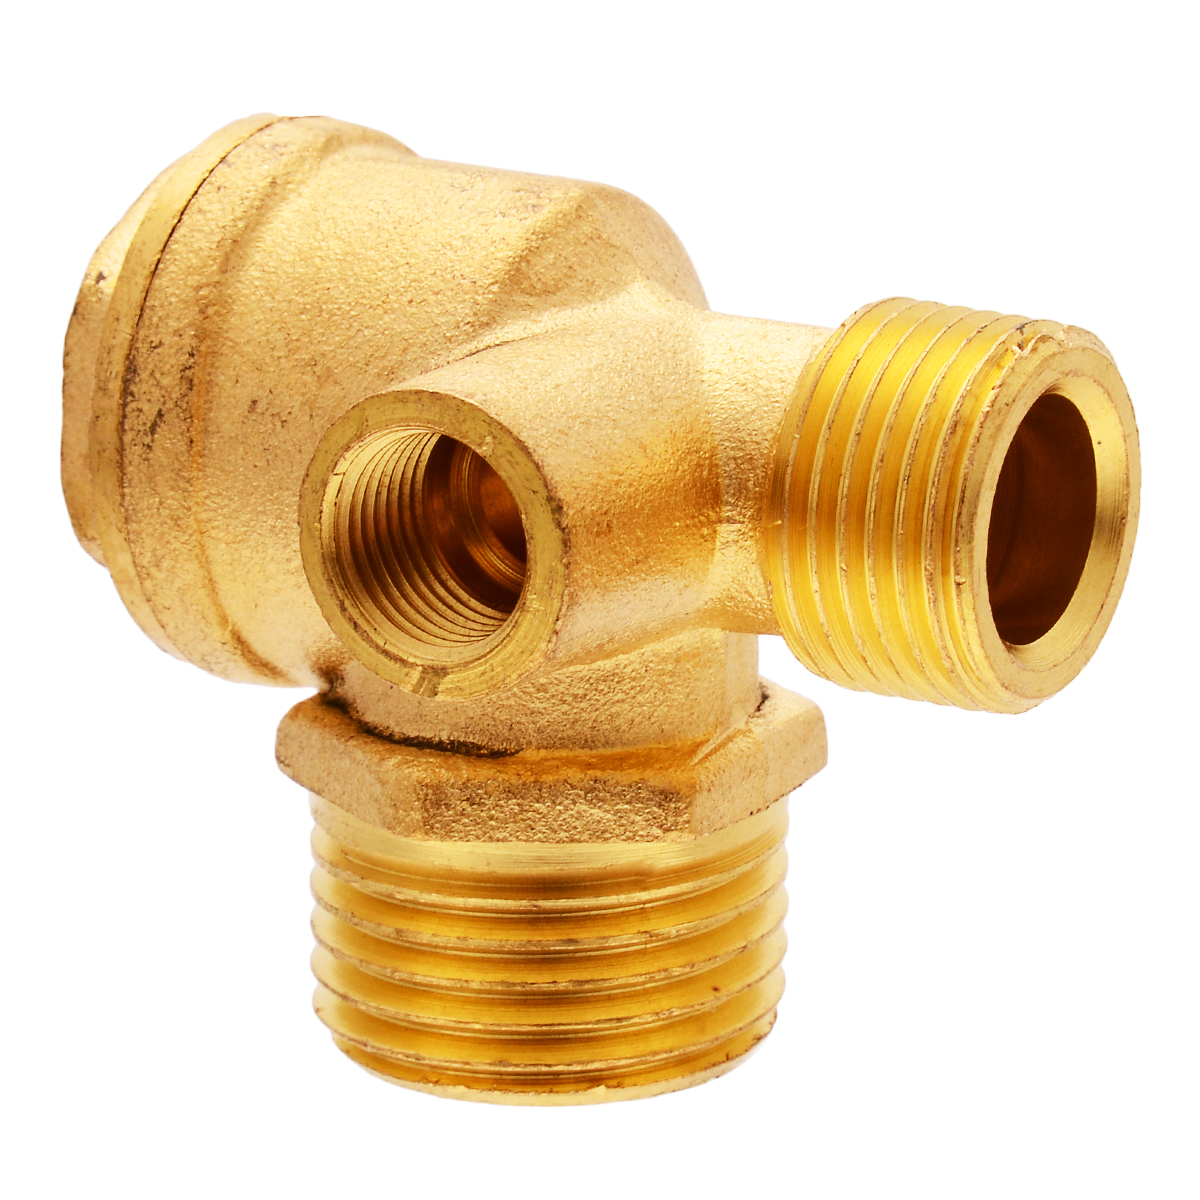 Brass 3 Port Air Compressor Valve 90 Degree Air Compressor Check Valve Threaded  For Central Pneumatic Tool Connector Valves